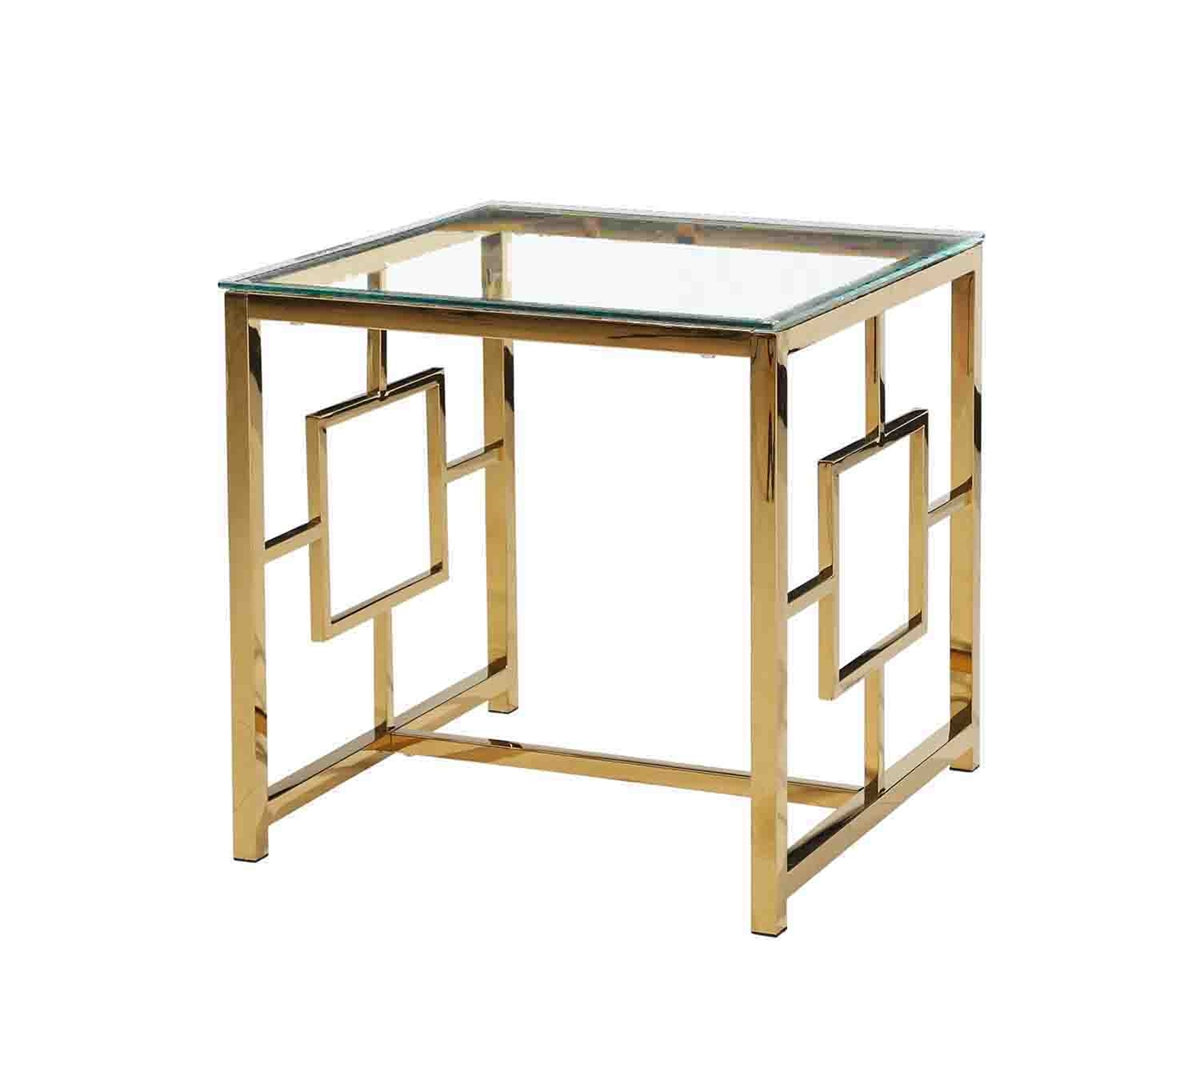 gold metal glass accent table sagebrook home log for pricing and availability material tan plastic tablecloths round coffee cover large end small lamp blue white cherry wood